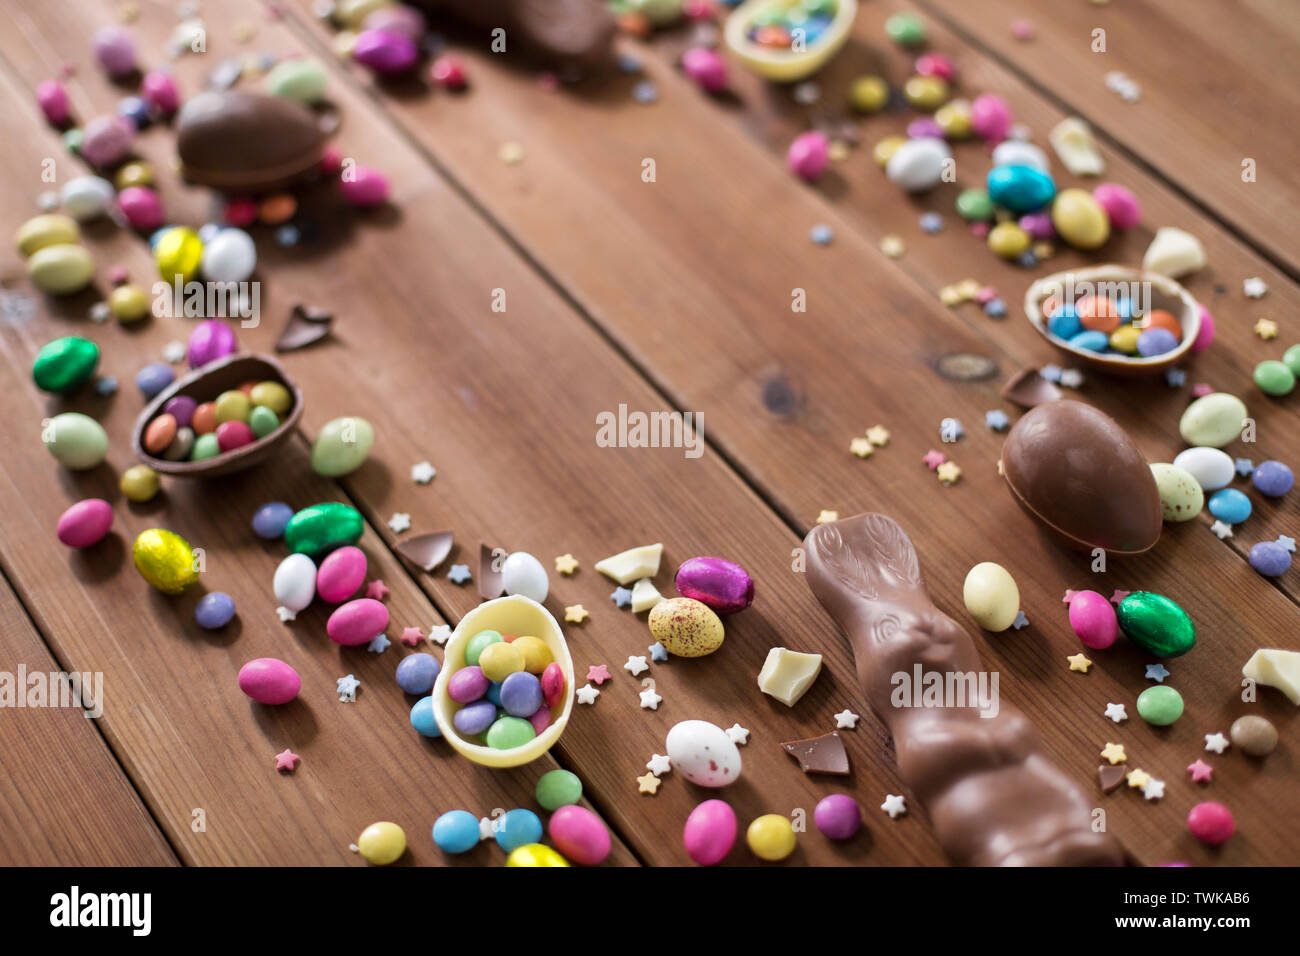 chocolate eggs and candy drops on wooden table - Stock Image